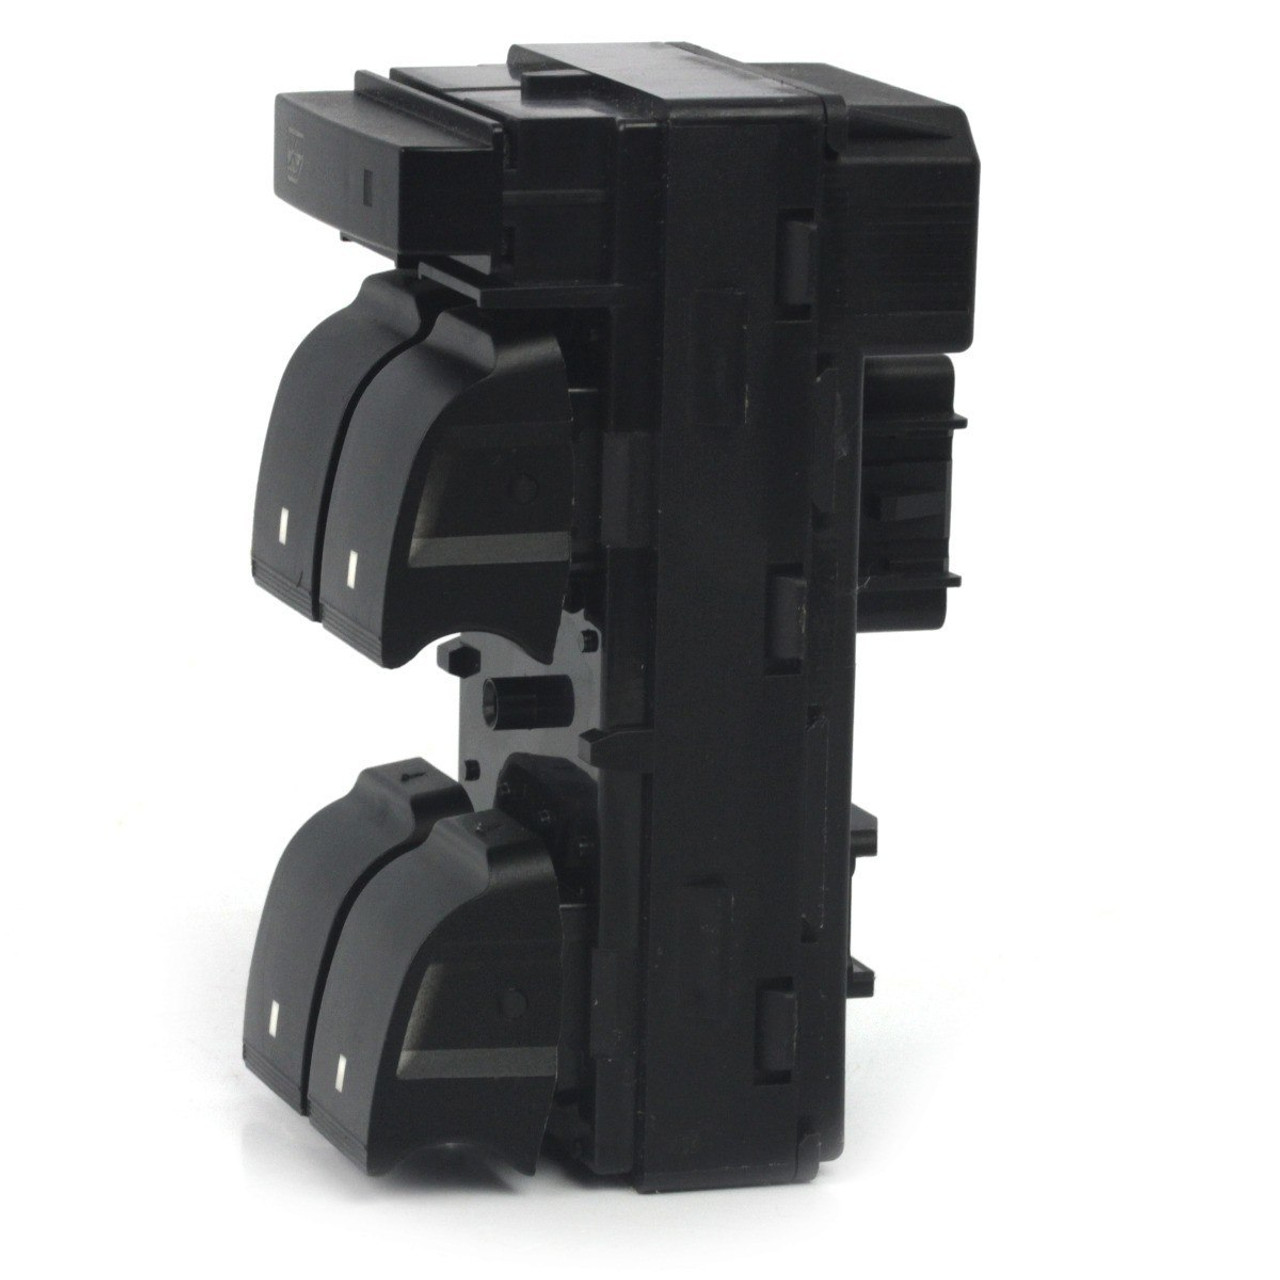 Car Window Switch- GM Master Power Window Switch, Black, by U.S. Solid